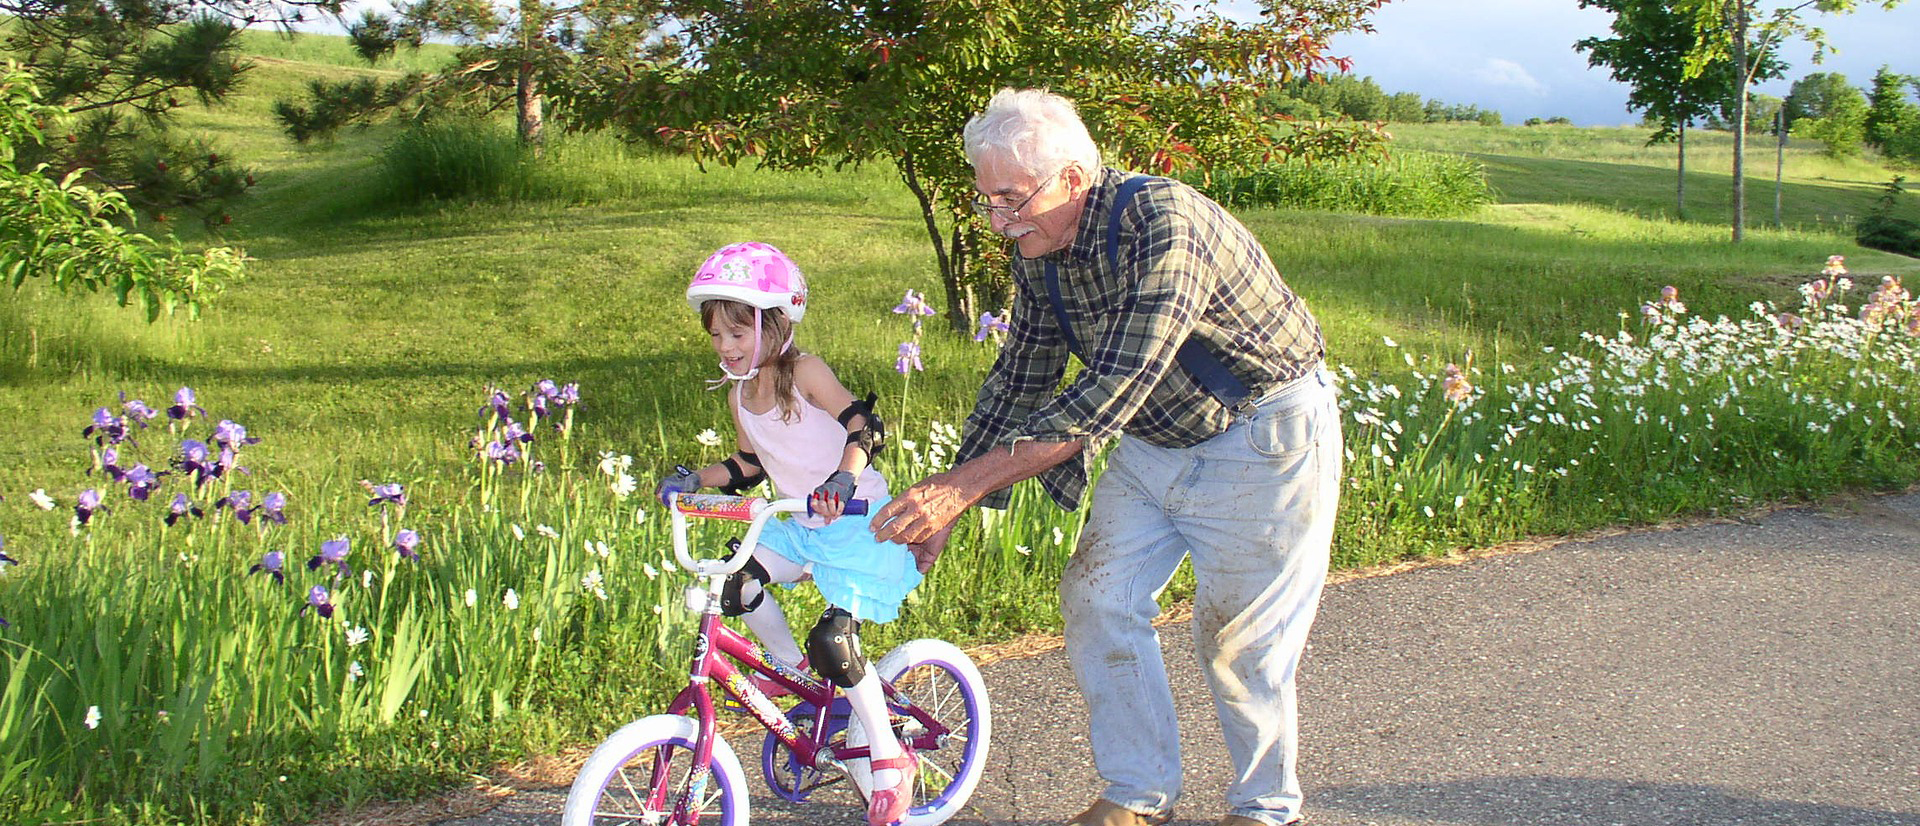 Grandfather with granddaughter riding bicycle Video Biographies